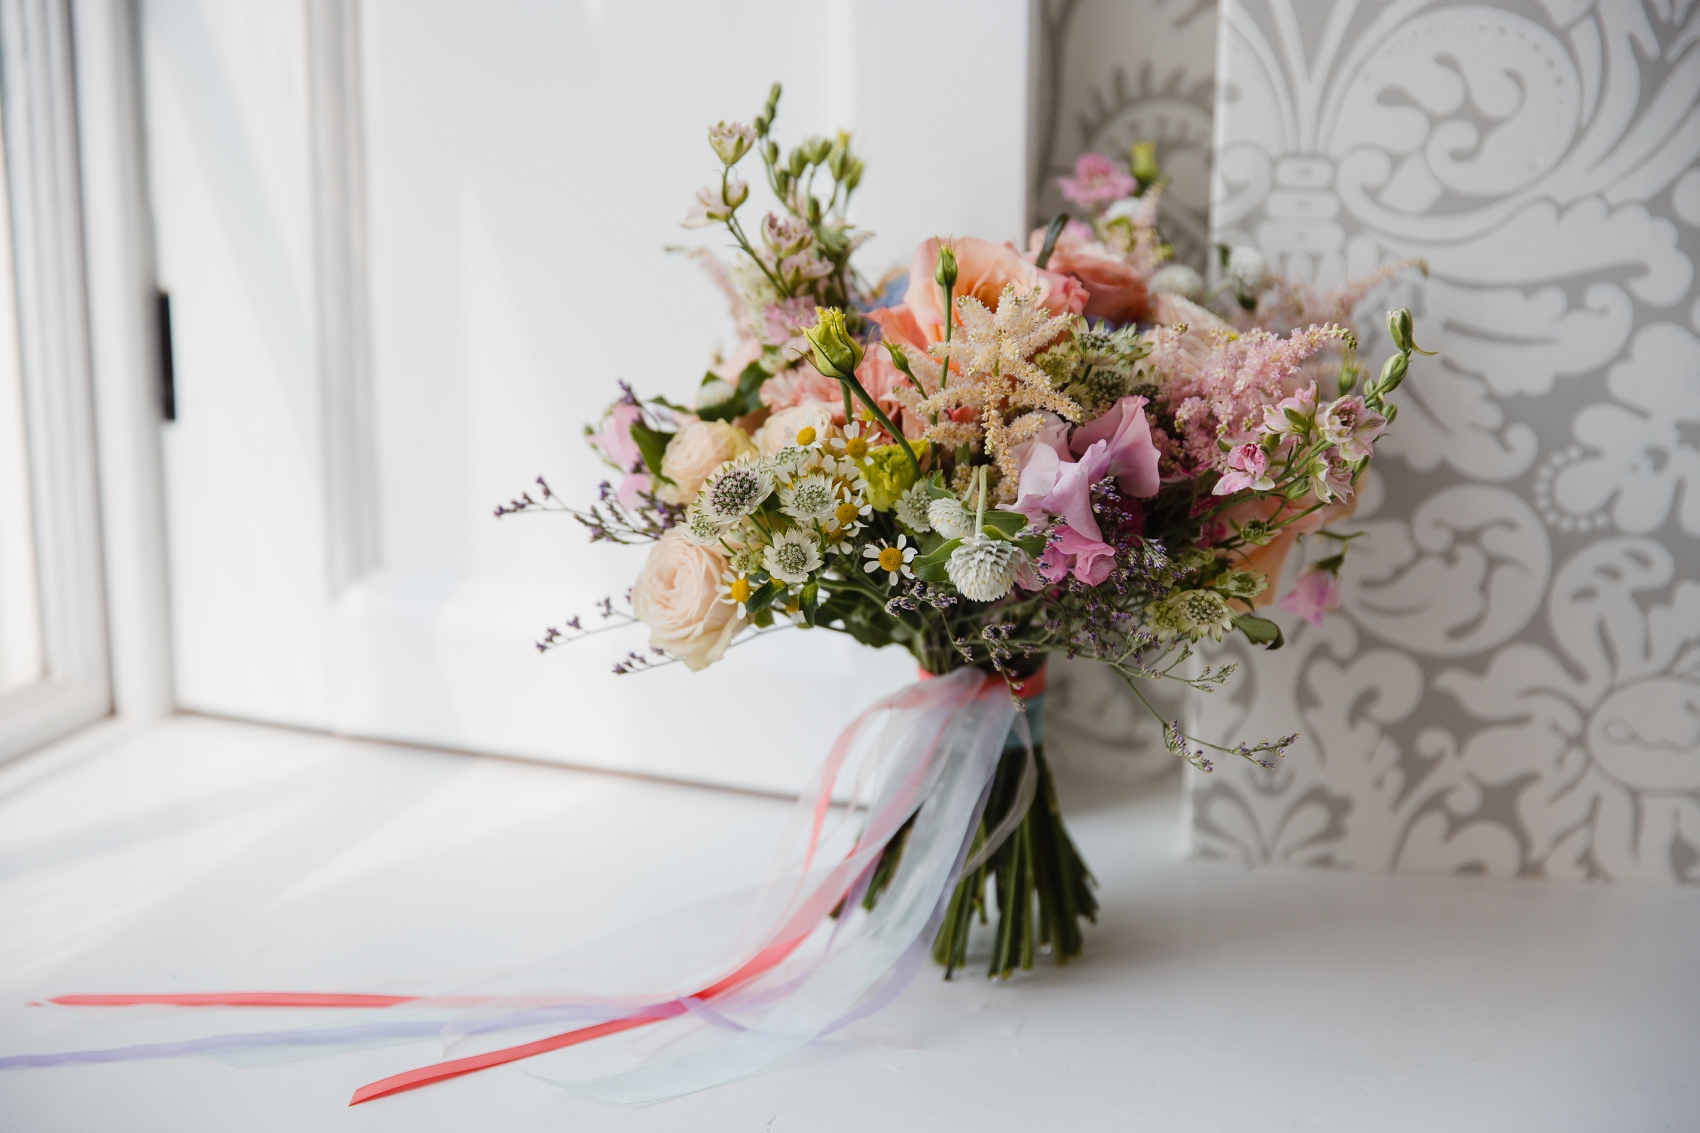 Spring wedding bouquet at Norwood Park